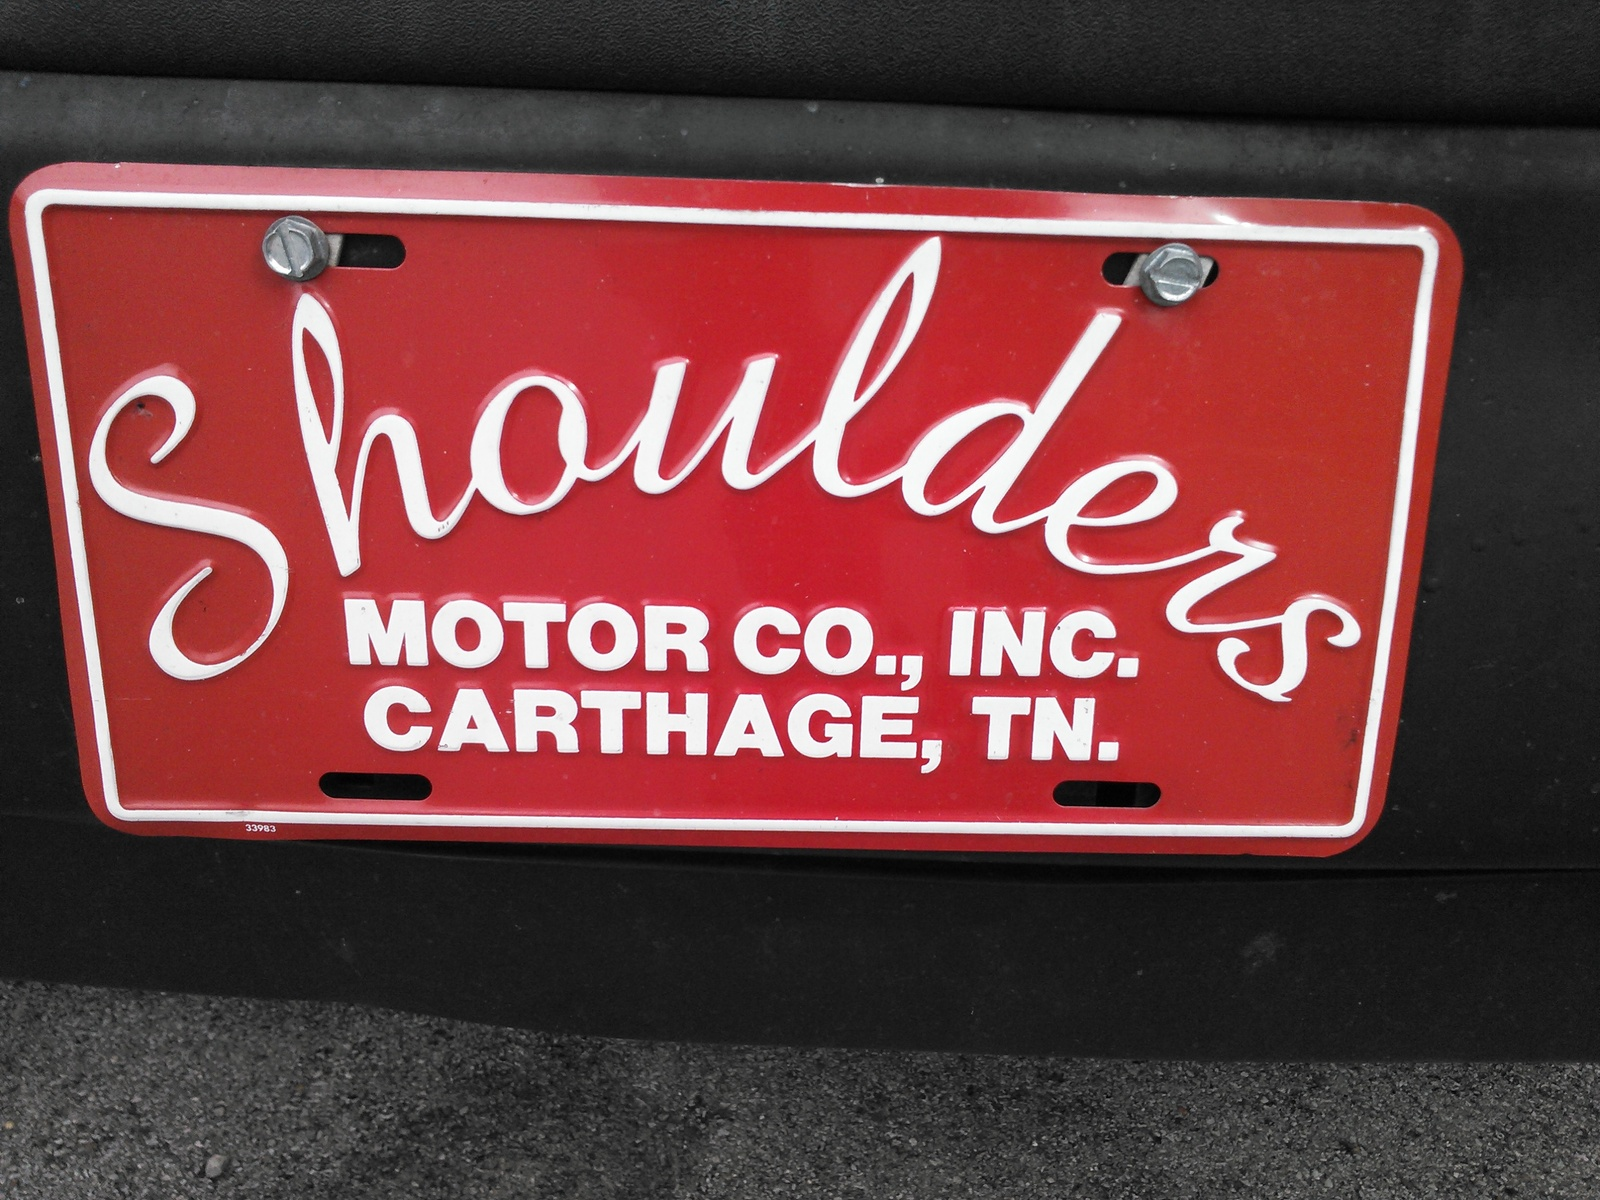 shoulders motor co inc carthage tn read consumer. Black Bedroom Furniture Sets. Home Design Ideas